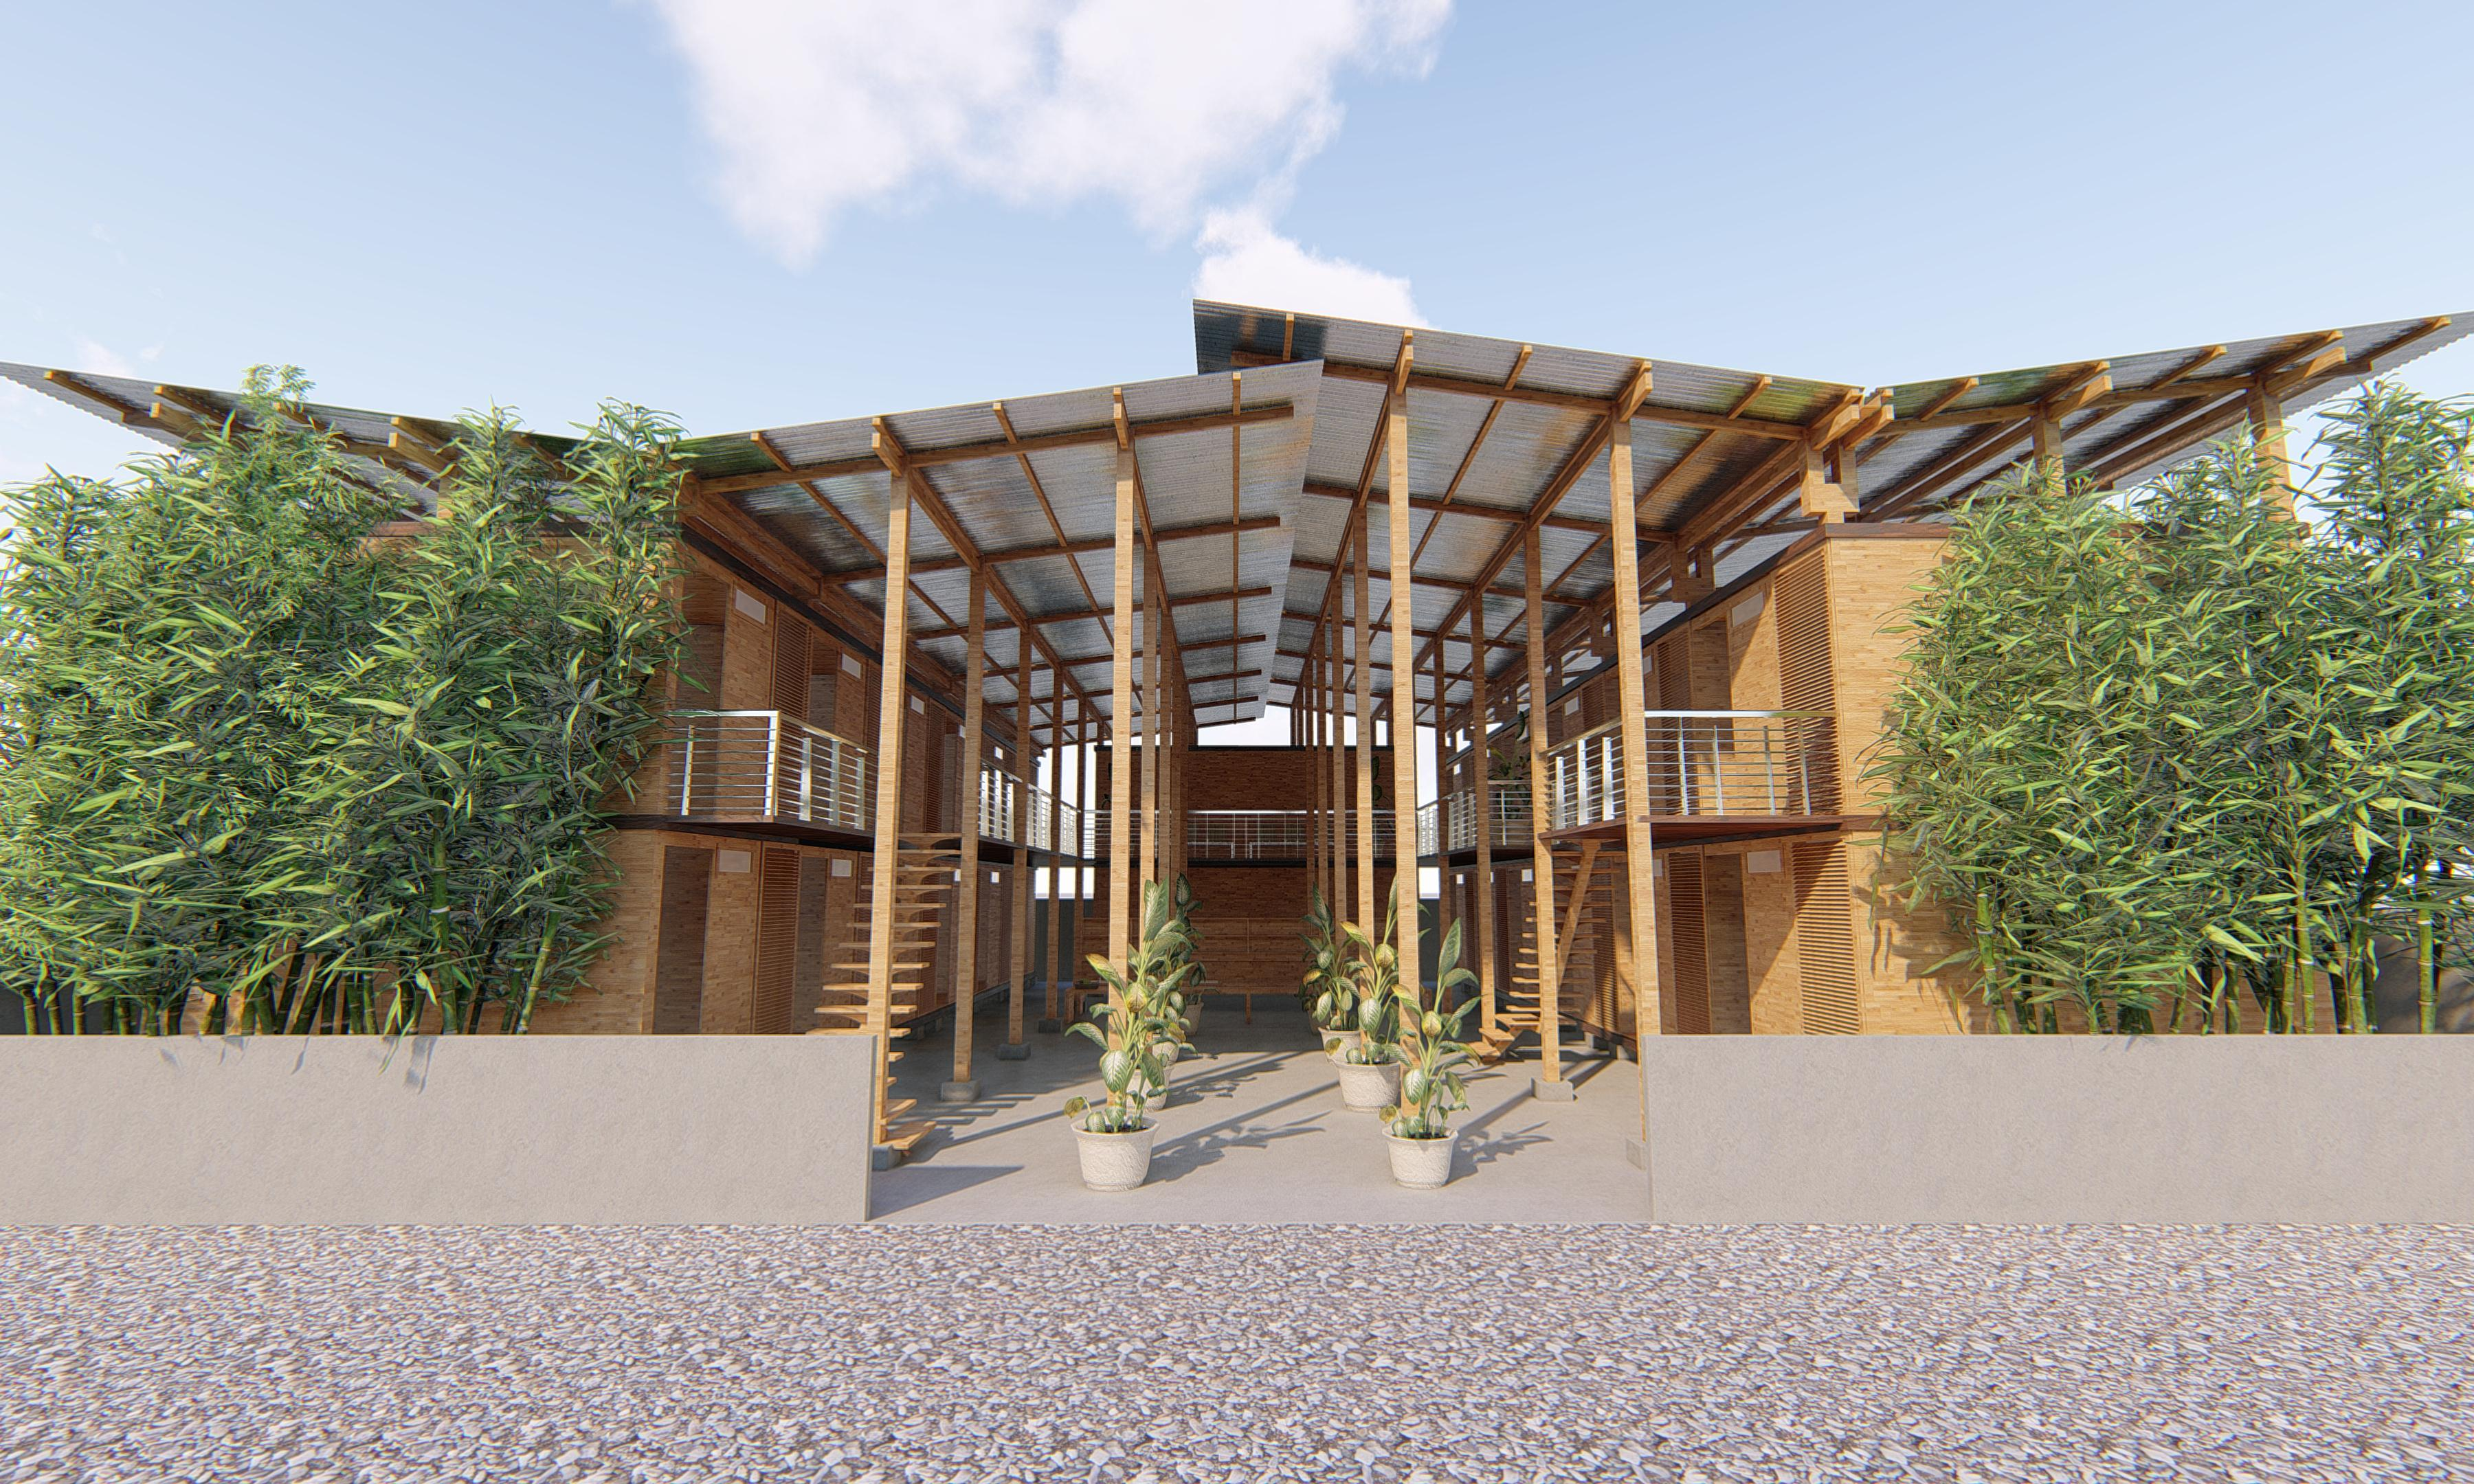 Bamboo house: easy to build, sustainable Cubo wins top prize